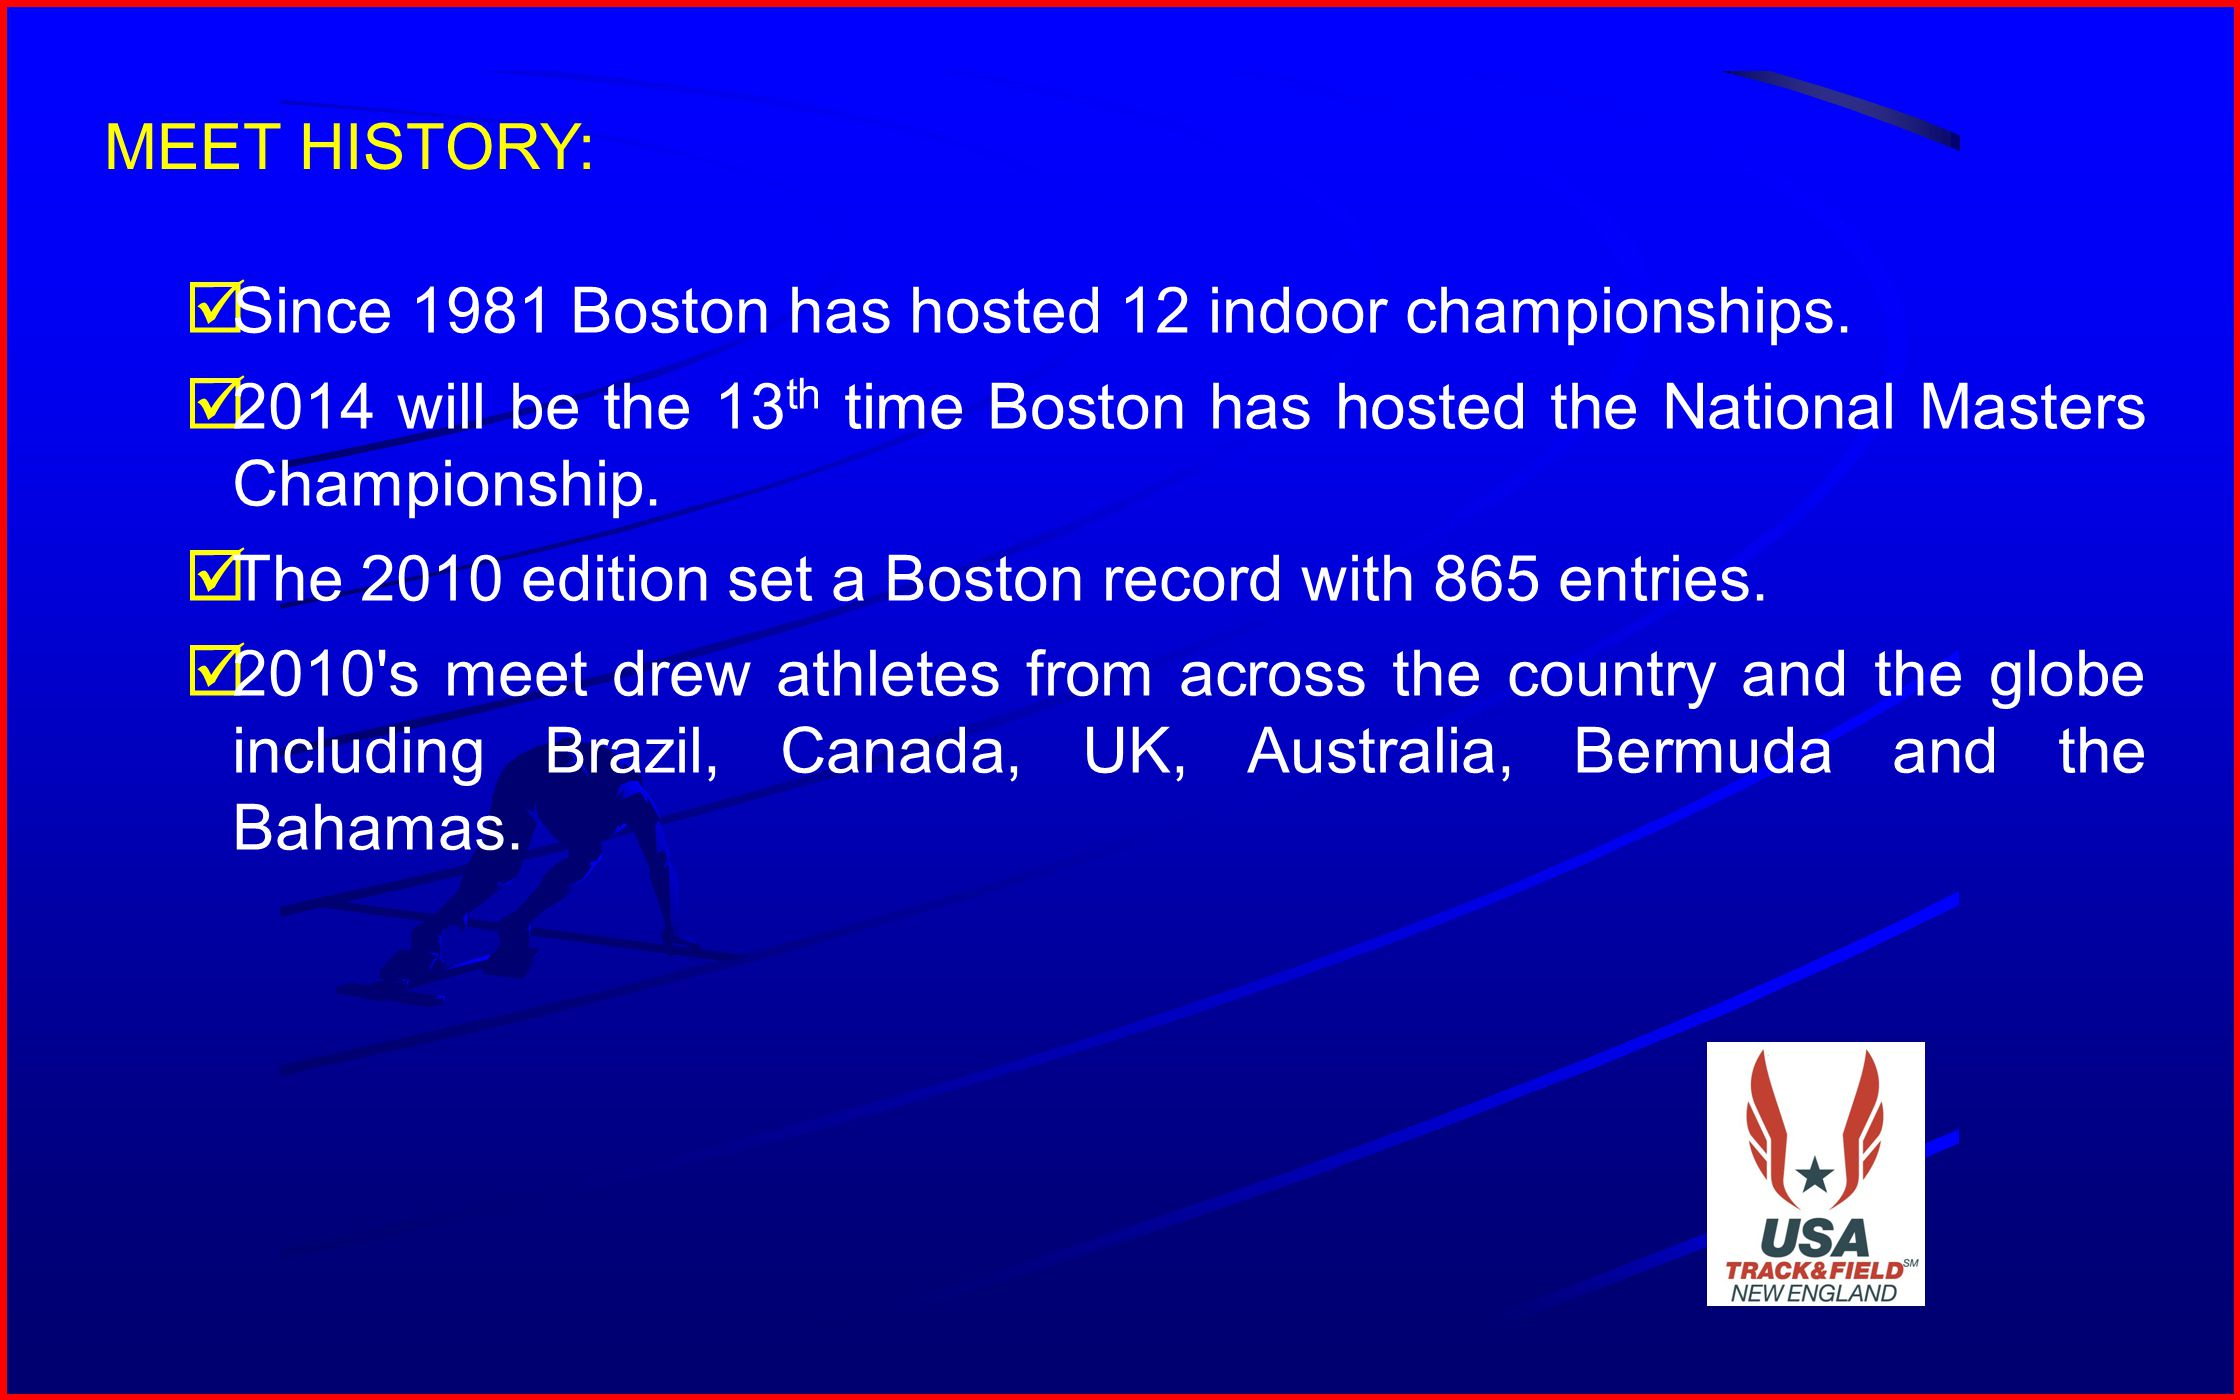 4 MEET HISTORY: Since 1981 Boston has hosted 12 indoor championships. 2014 will be the 13 th time Boston has hosted the National Masters Championship.